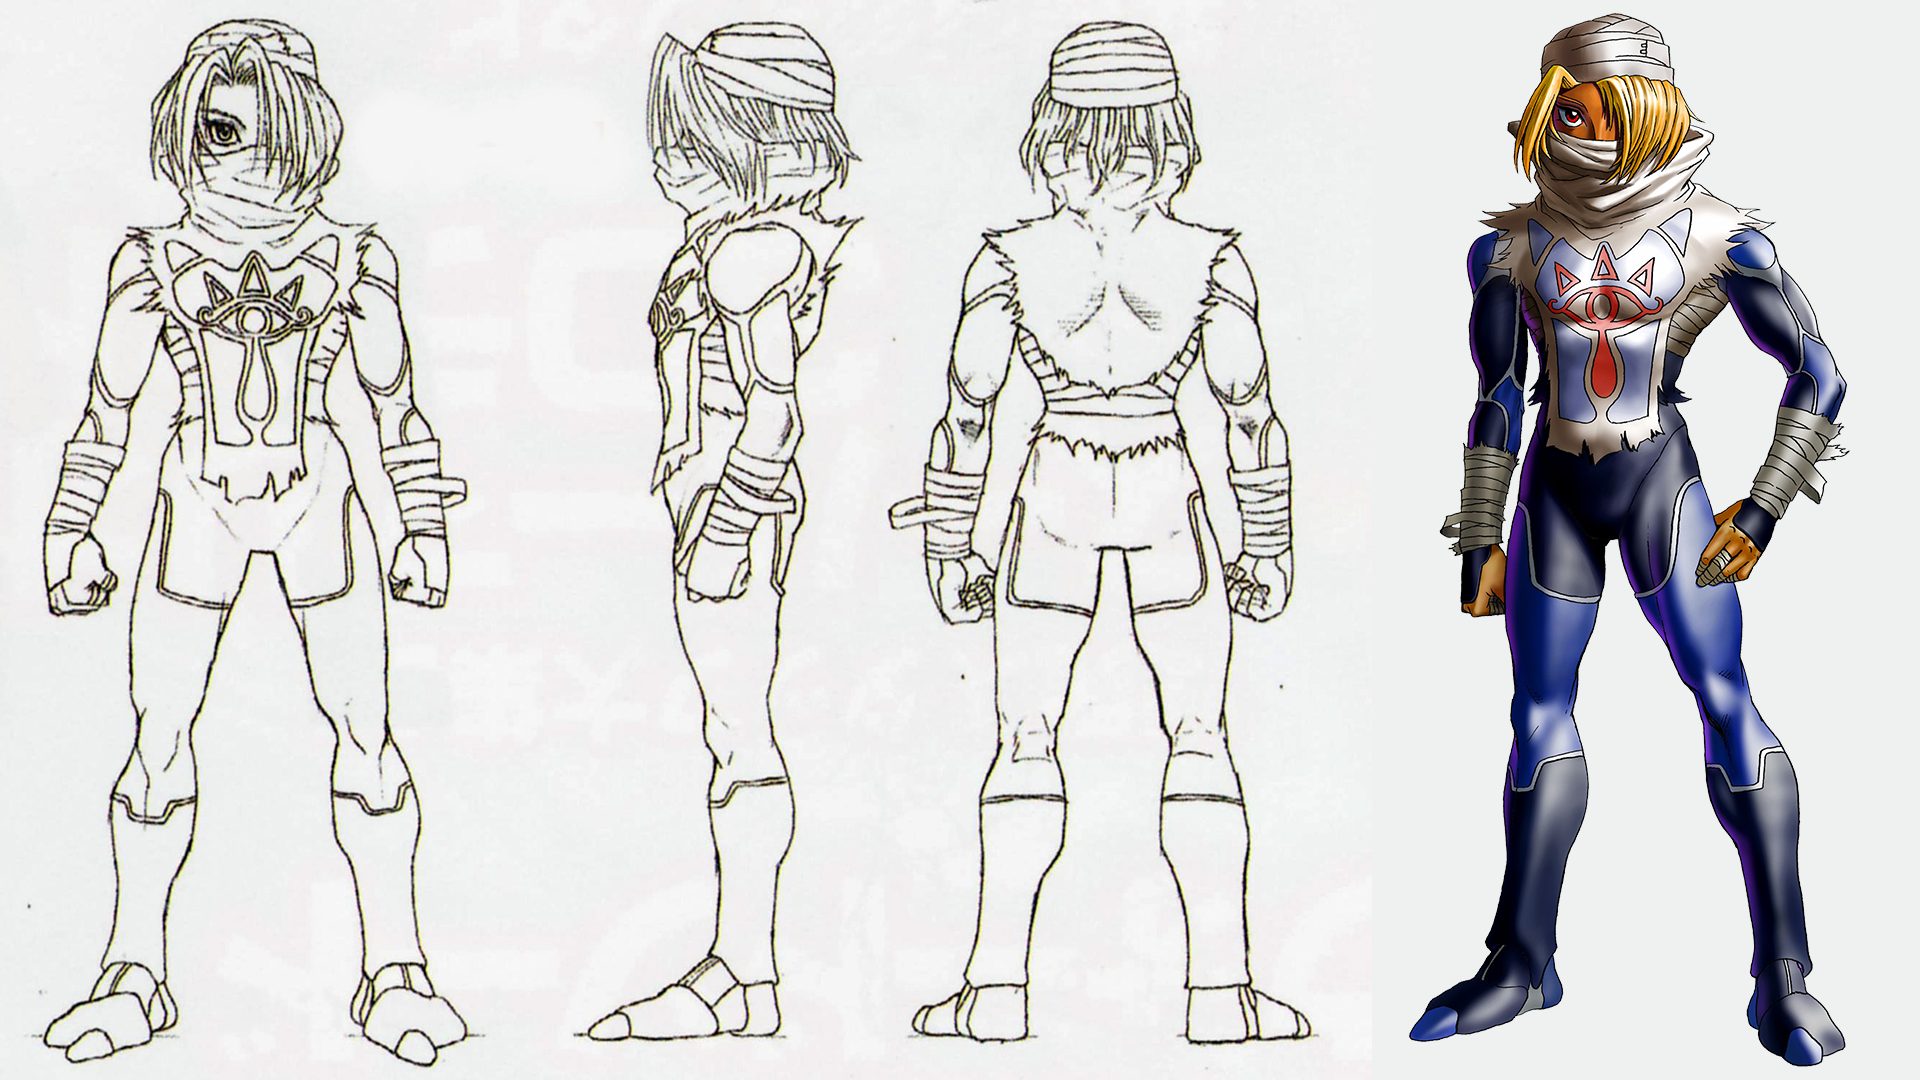 ocarina-of-time-sheik-concept-art